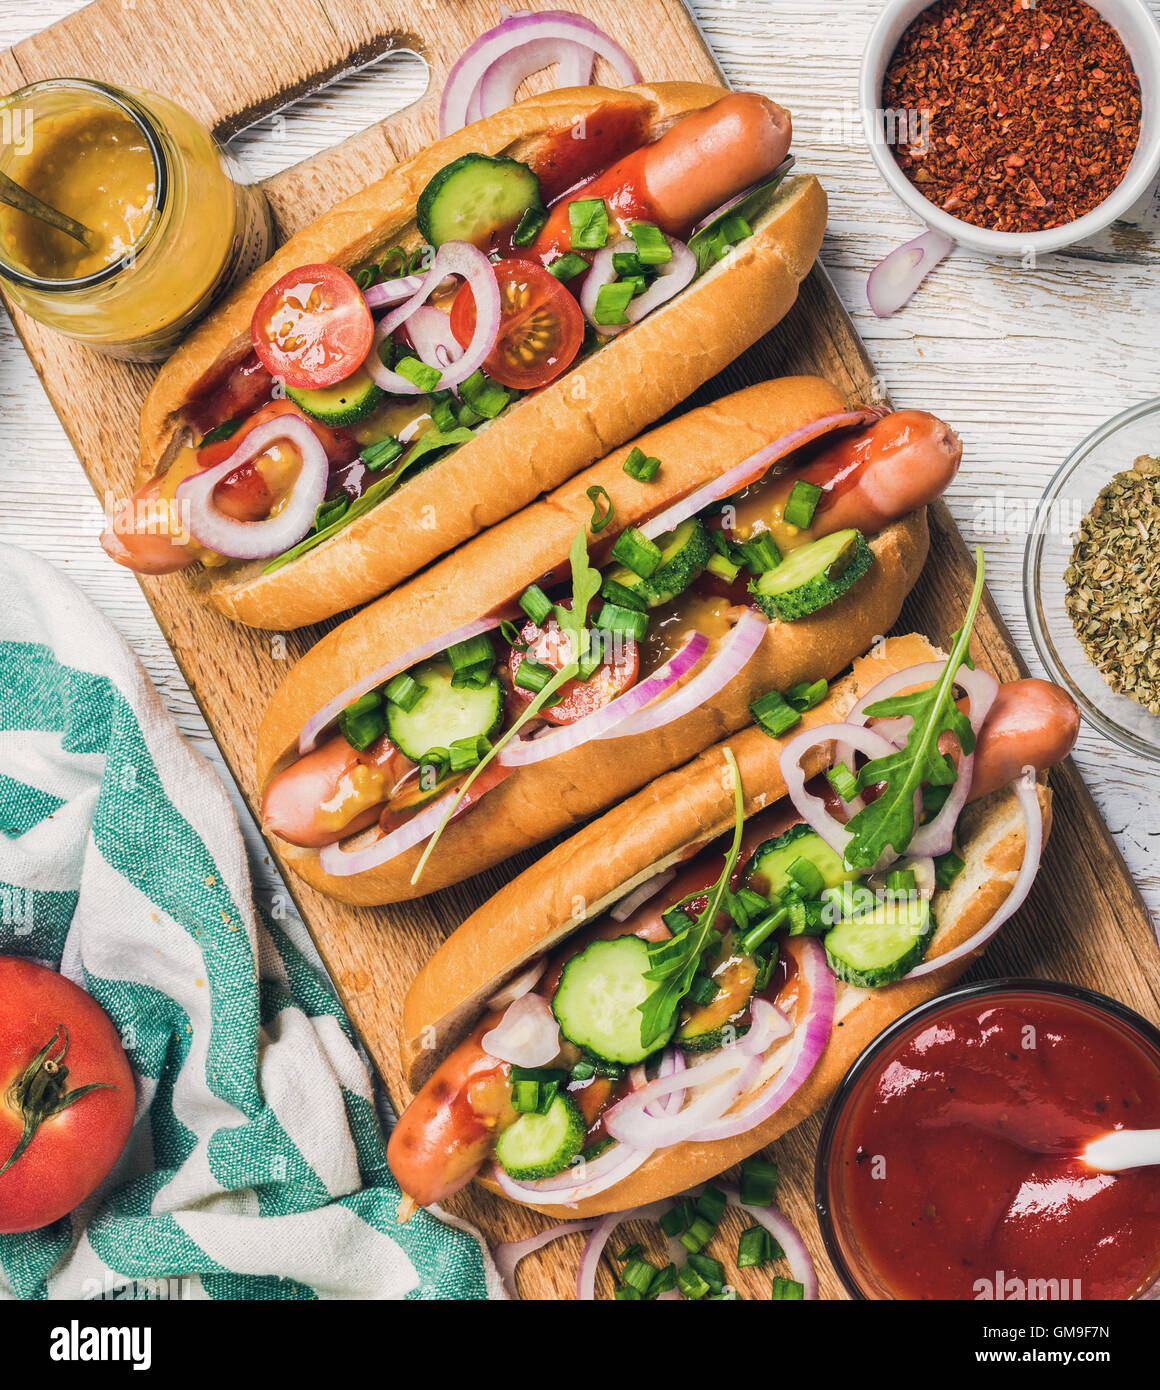 Homemade hot-dogs with vegetables, ketchup, mustard and spices - Stock Image